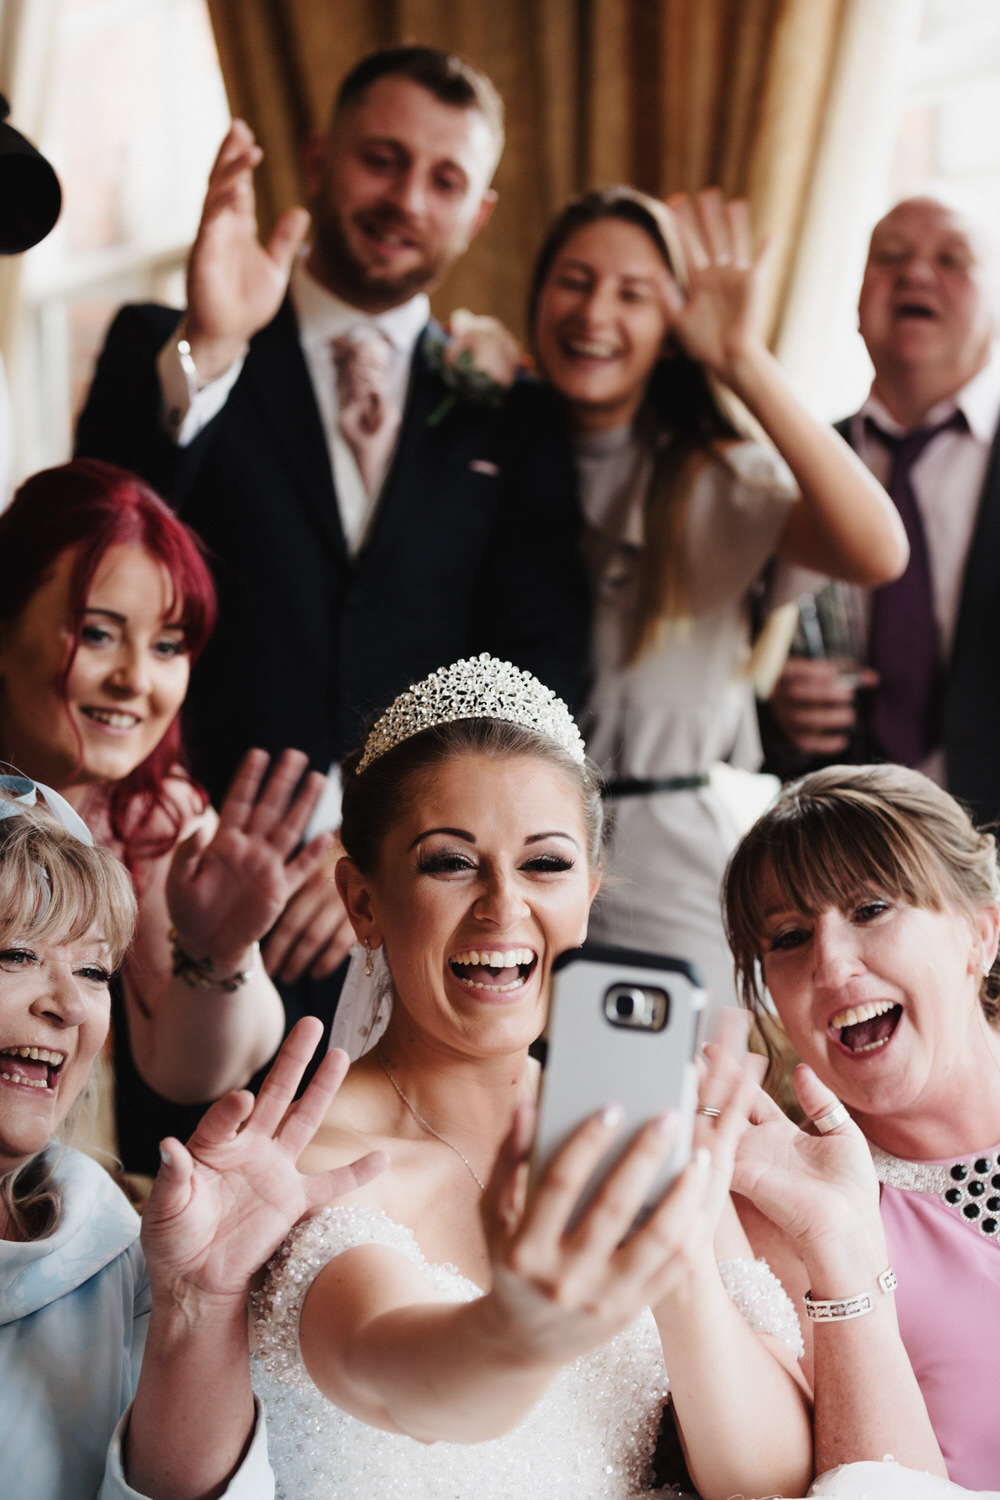 A wedding party laughs and reacts to a relative on the phone during the wedding